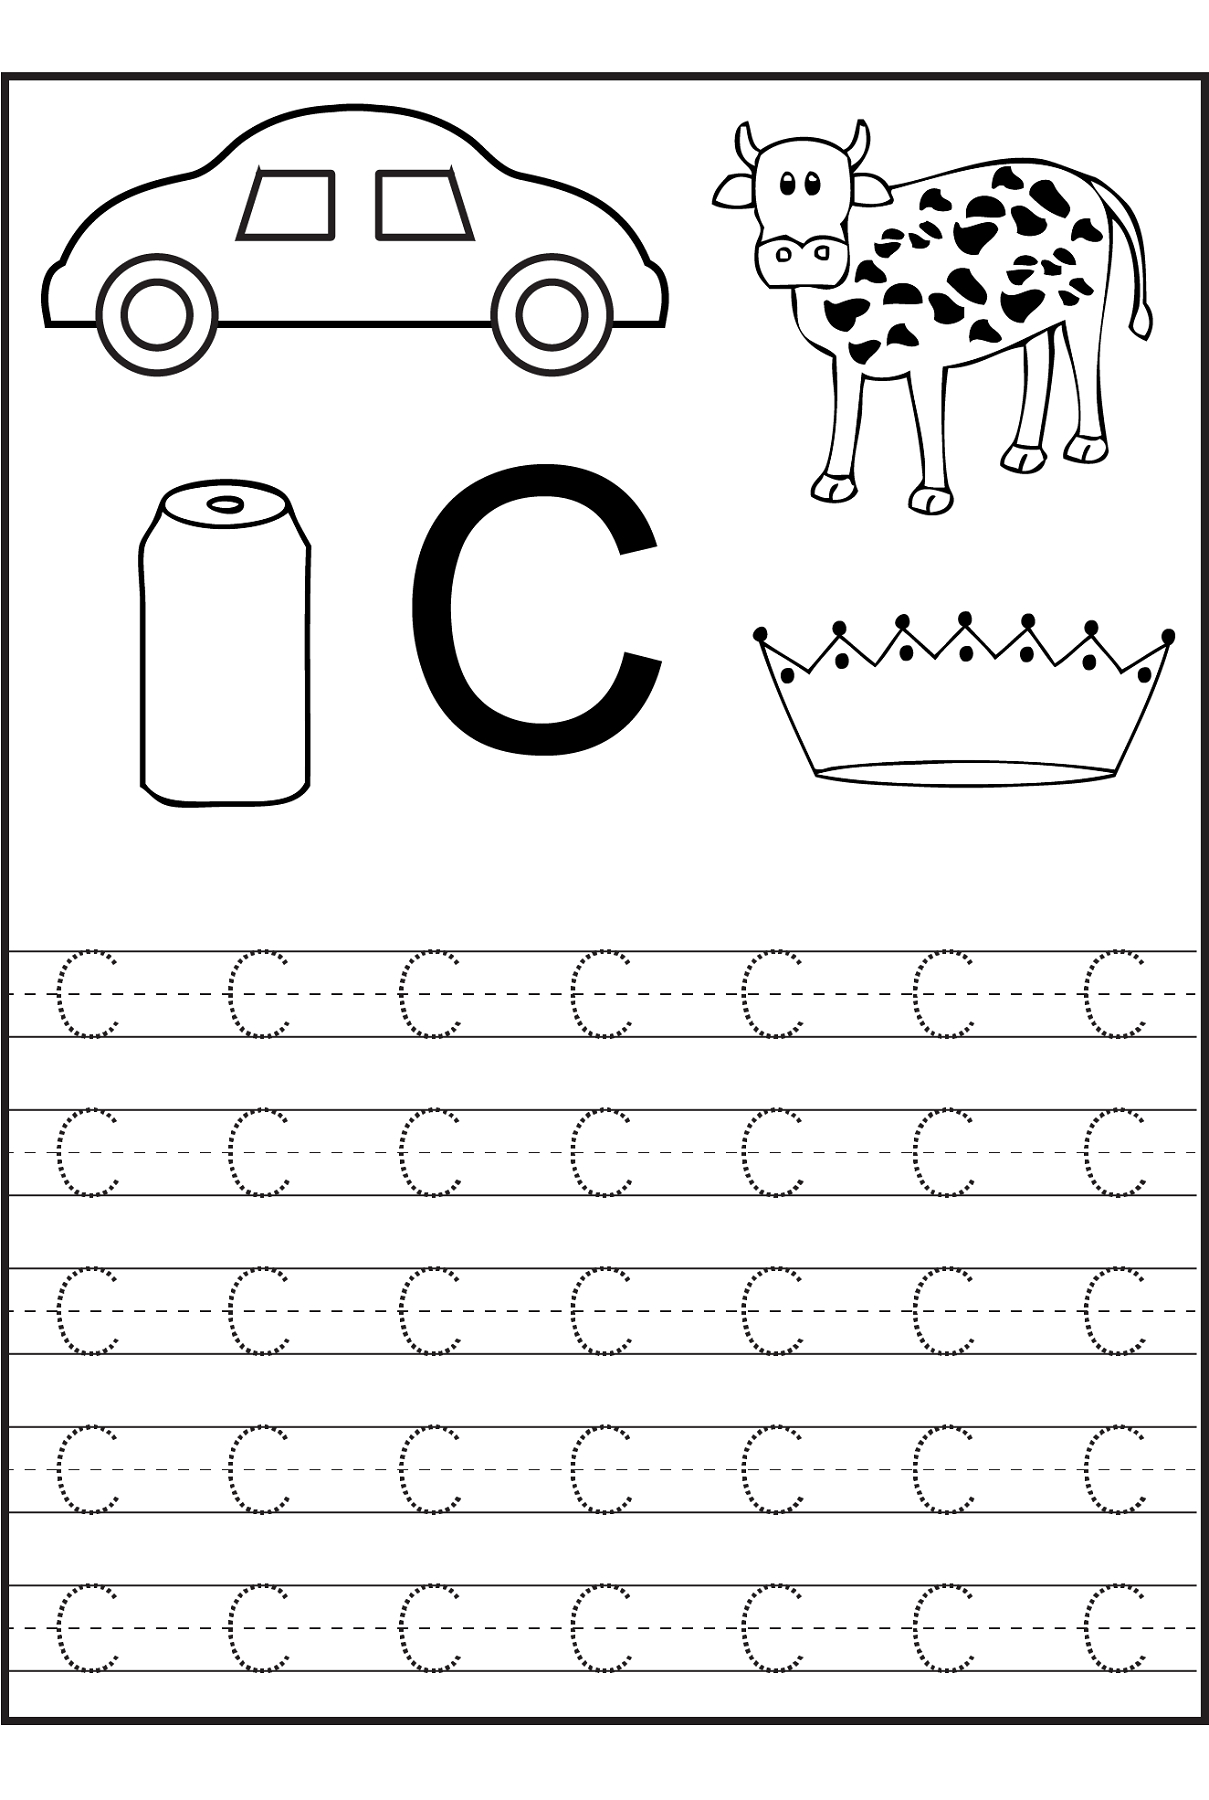 Trace The Letter C Worksheets | Learning Worksheets throughout Letter C Worksheets For Pre K